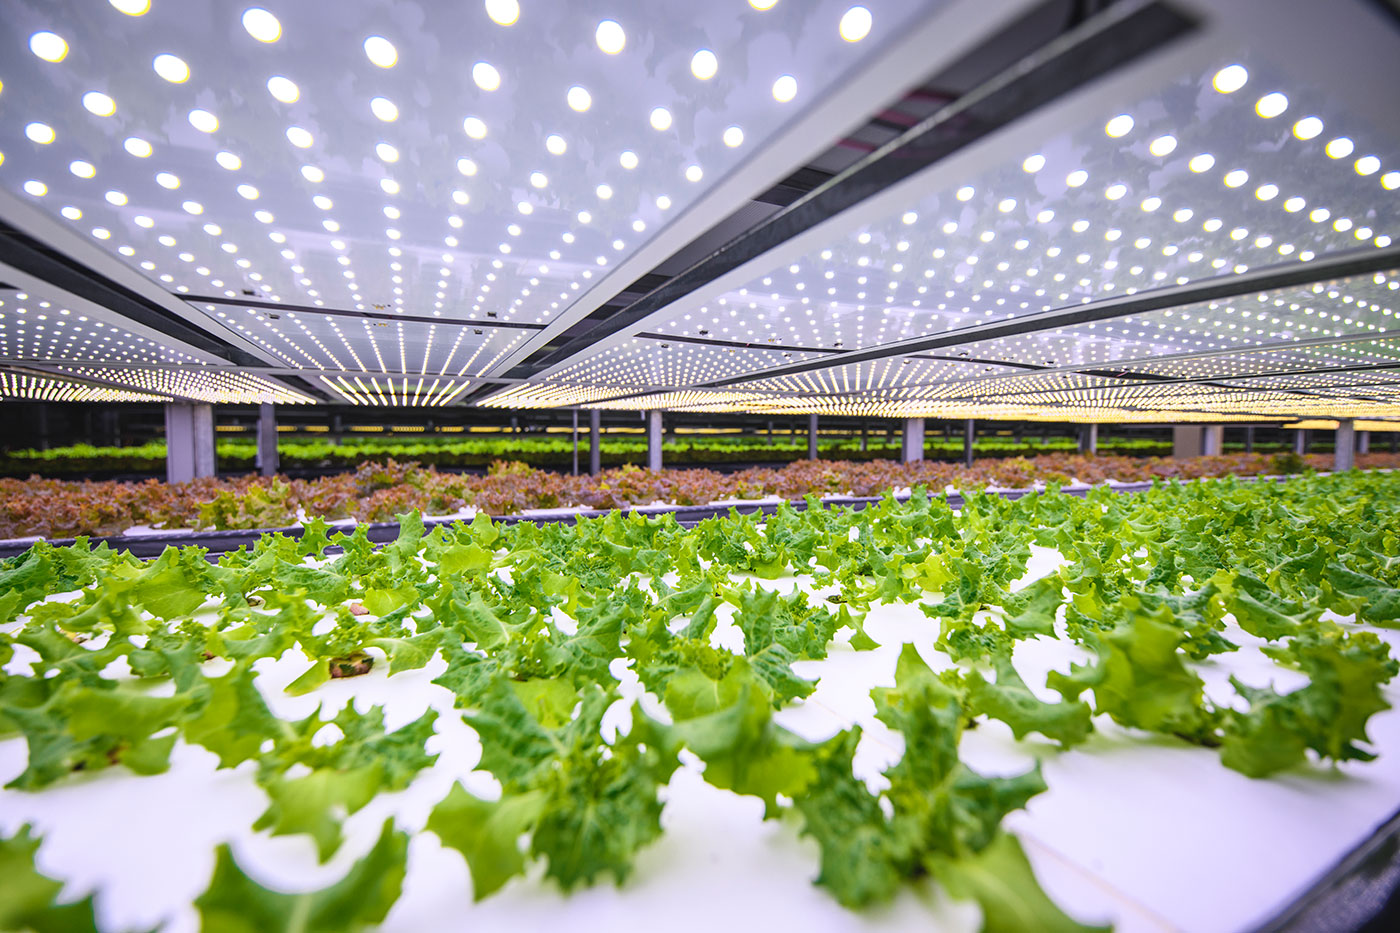 Salad on the shelves in a vertical farm